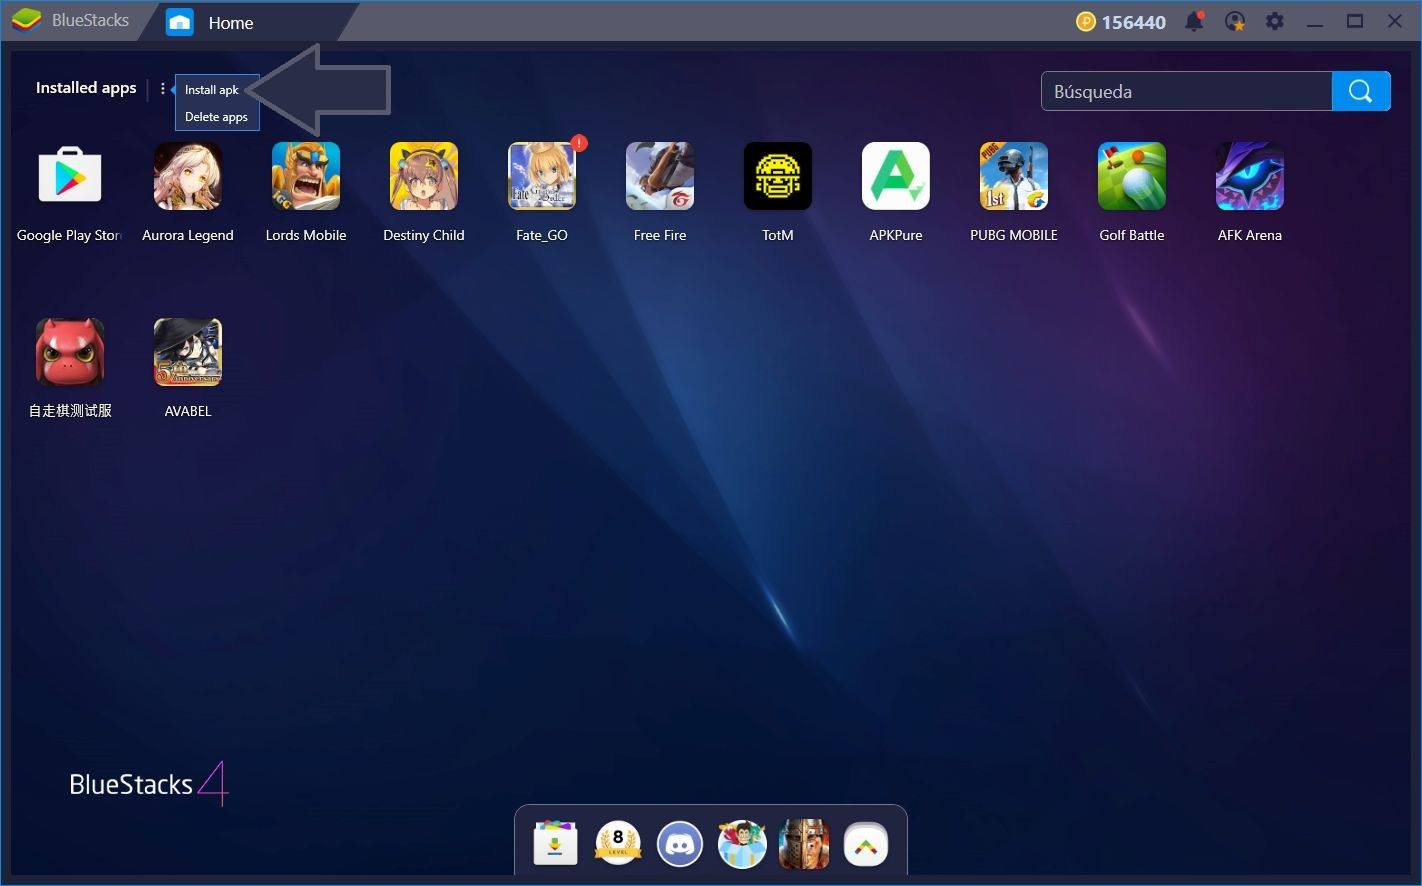 BlueStacks Usage and Setup Guide for Auto Chess